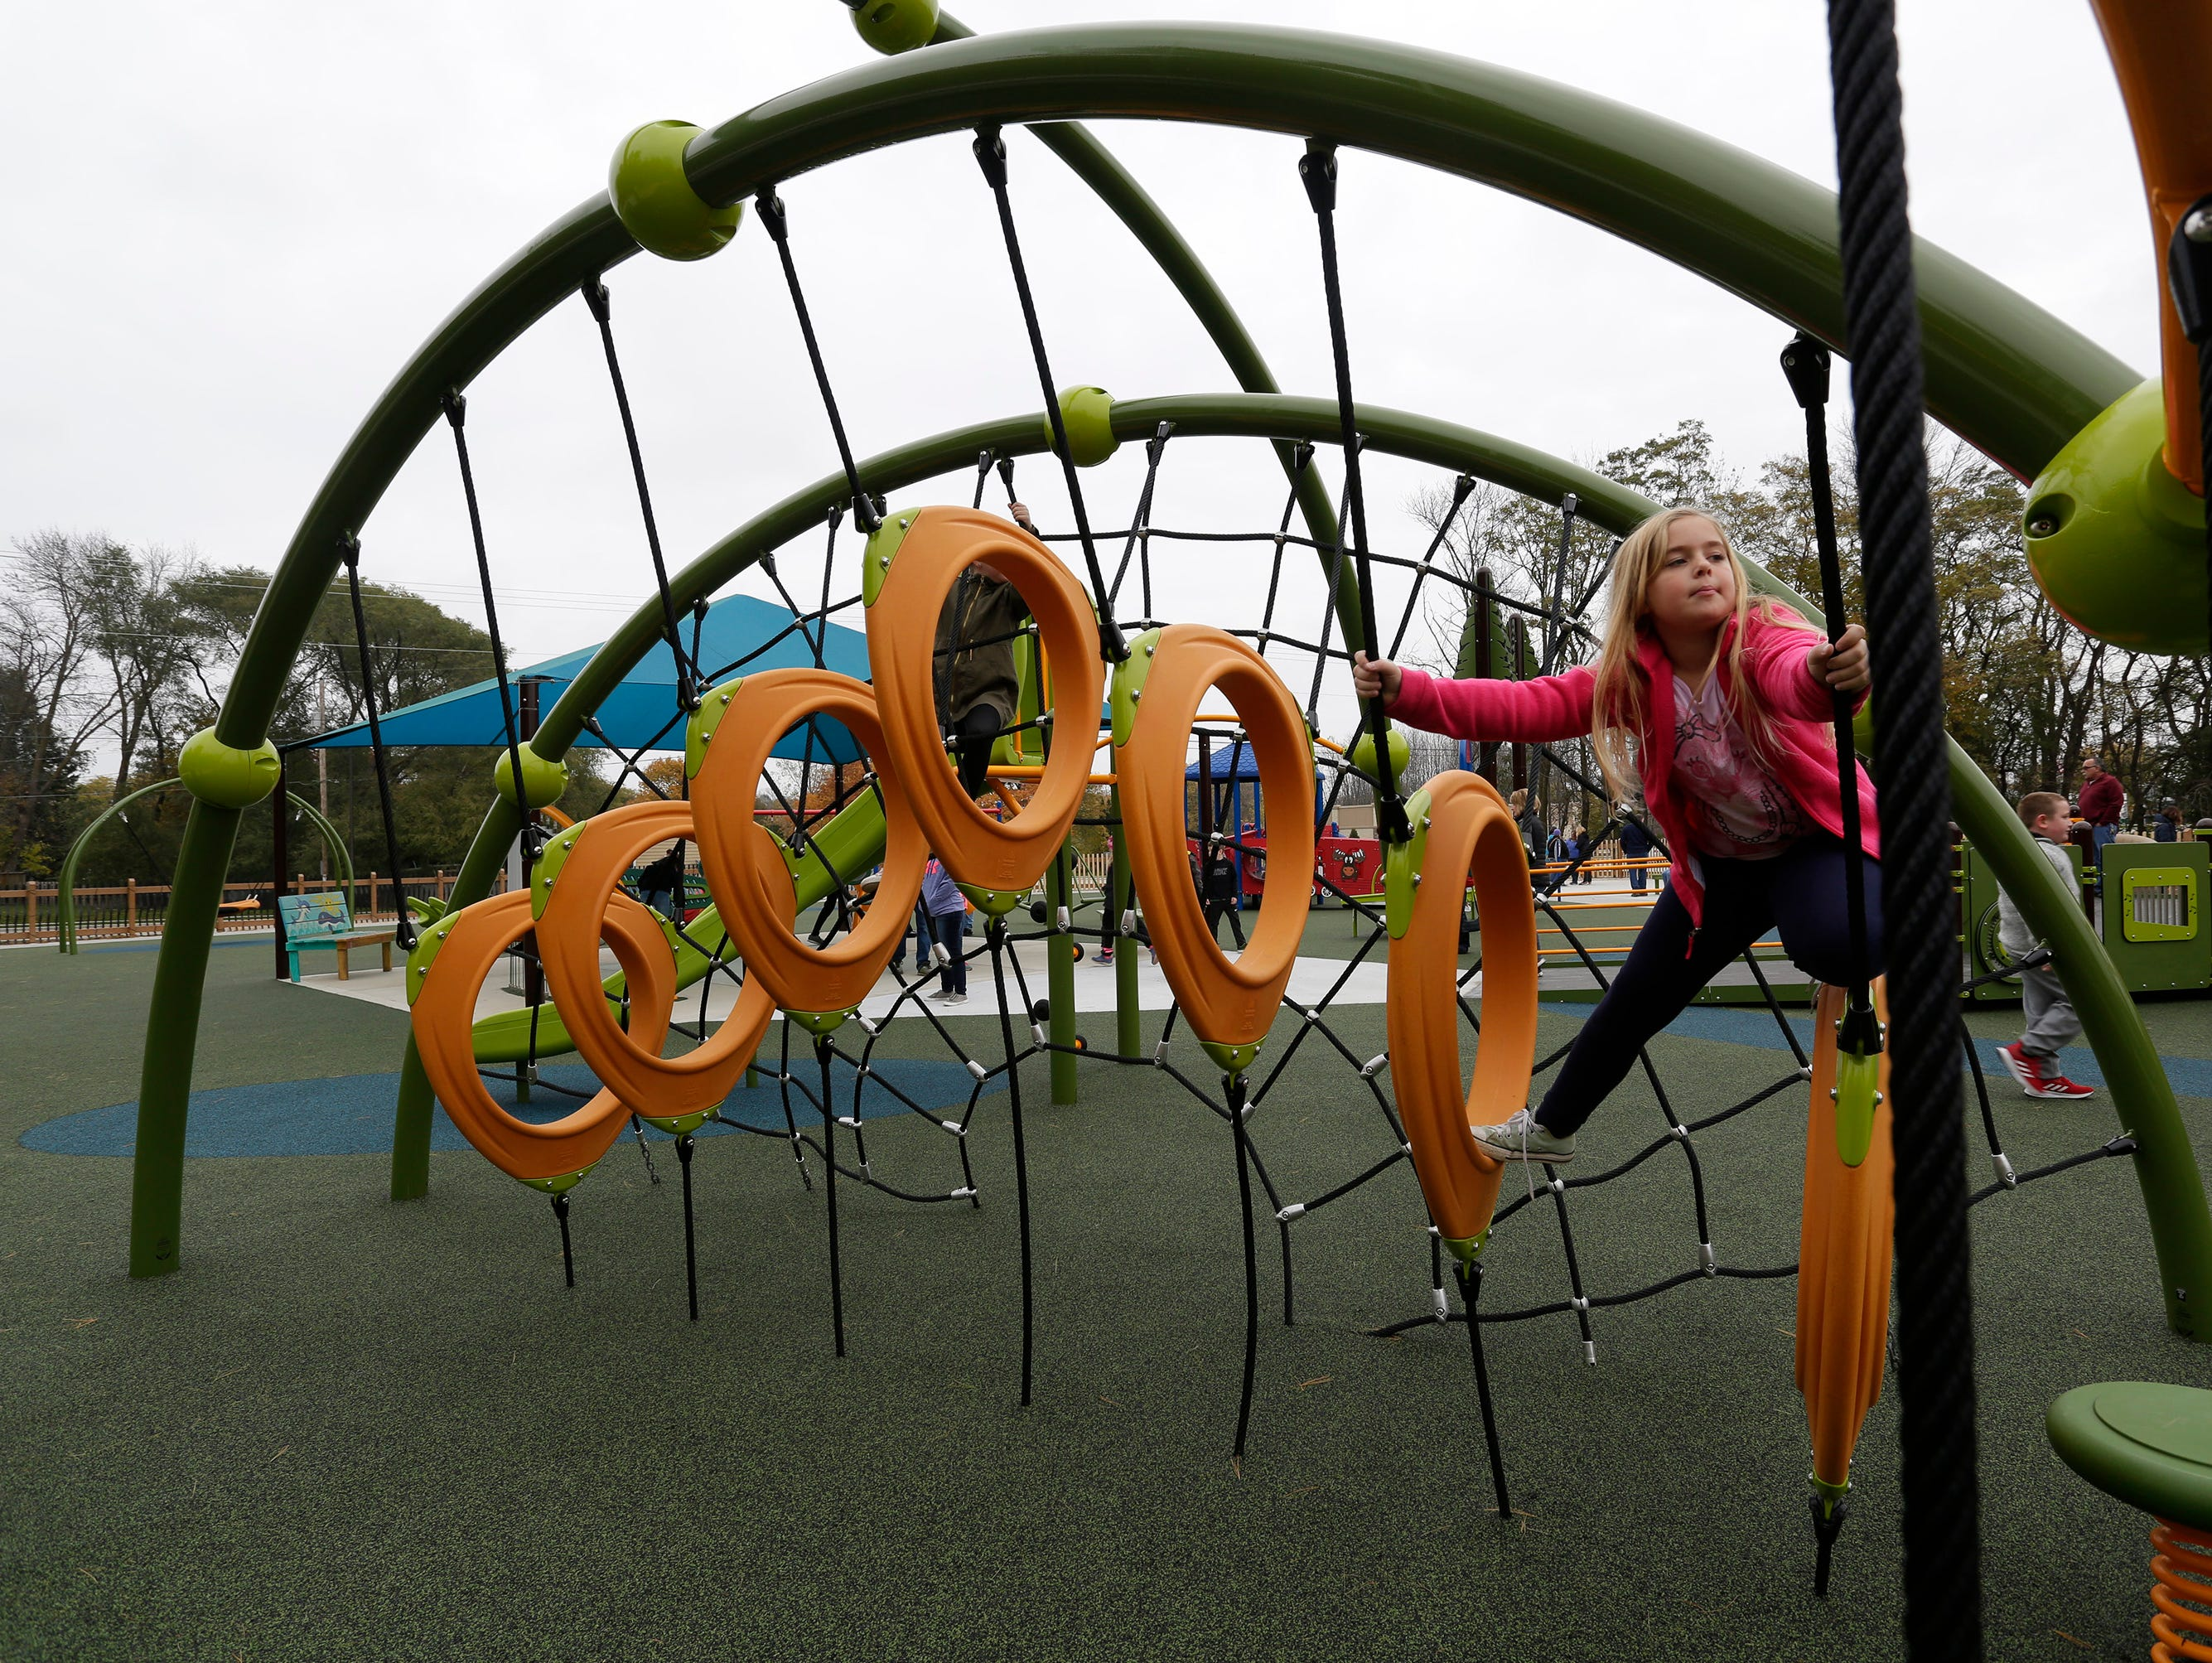 A young girl tests her skills at the Shaw Family Playground, Saturday, September 27, 2018, in Sheboygan, Wis. The playground held a ribbon cutting event to showcase the adaptive playground that is accessible for children of all physical abilities.